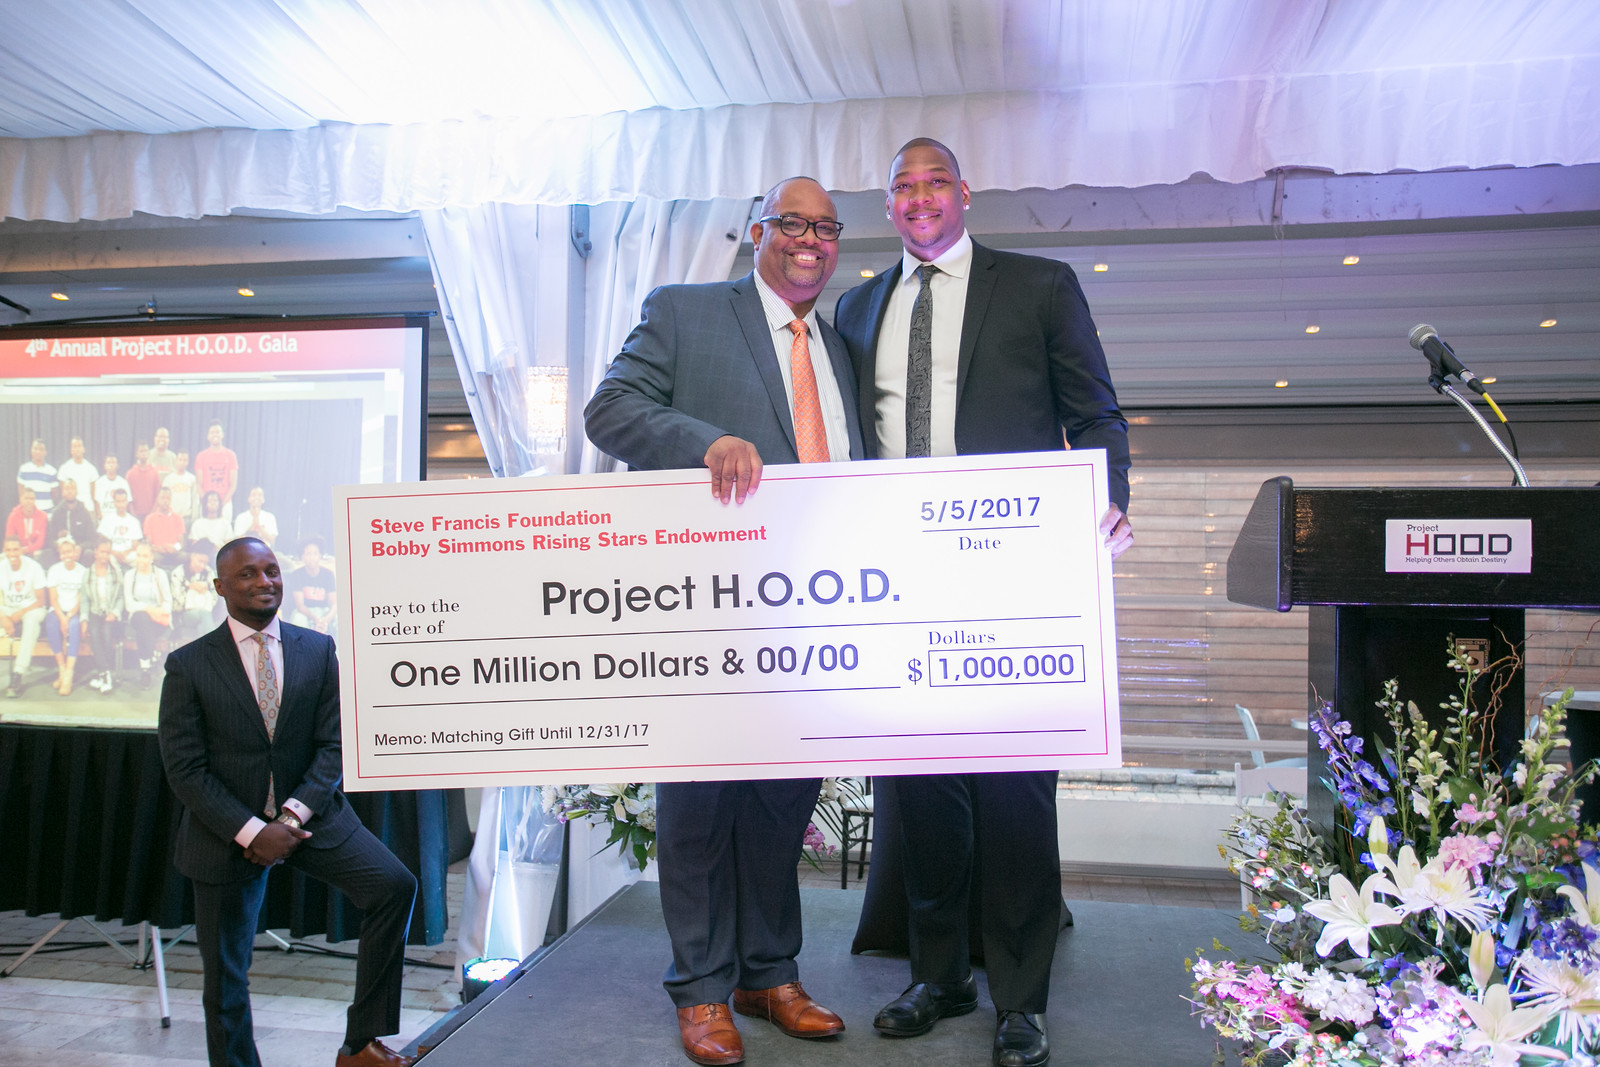 Former NBA Player Bobby Simmons presents $1million matching gift in partnership with Former NBA Player Steve Francis to Project H.O.O.D.  Their organizations are the Steve Francis Foundation and the Rising Stars Endowment.